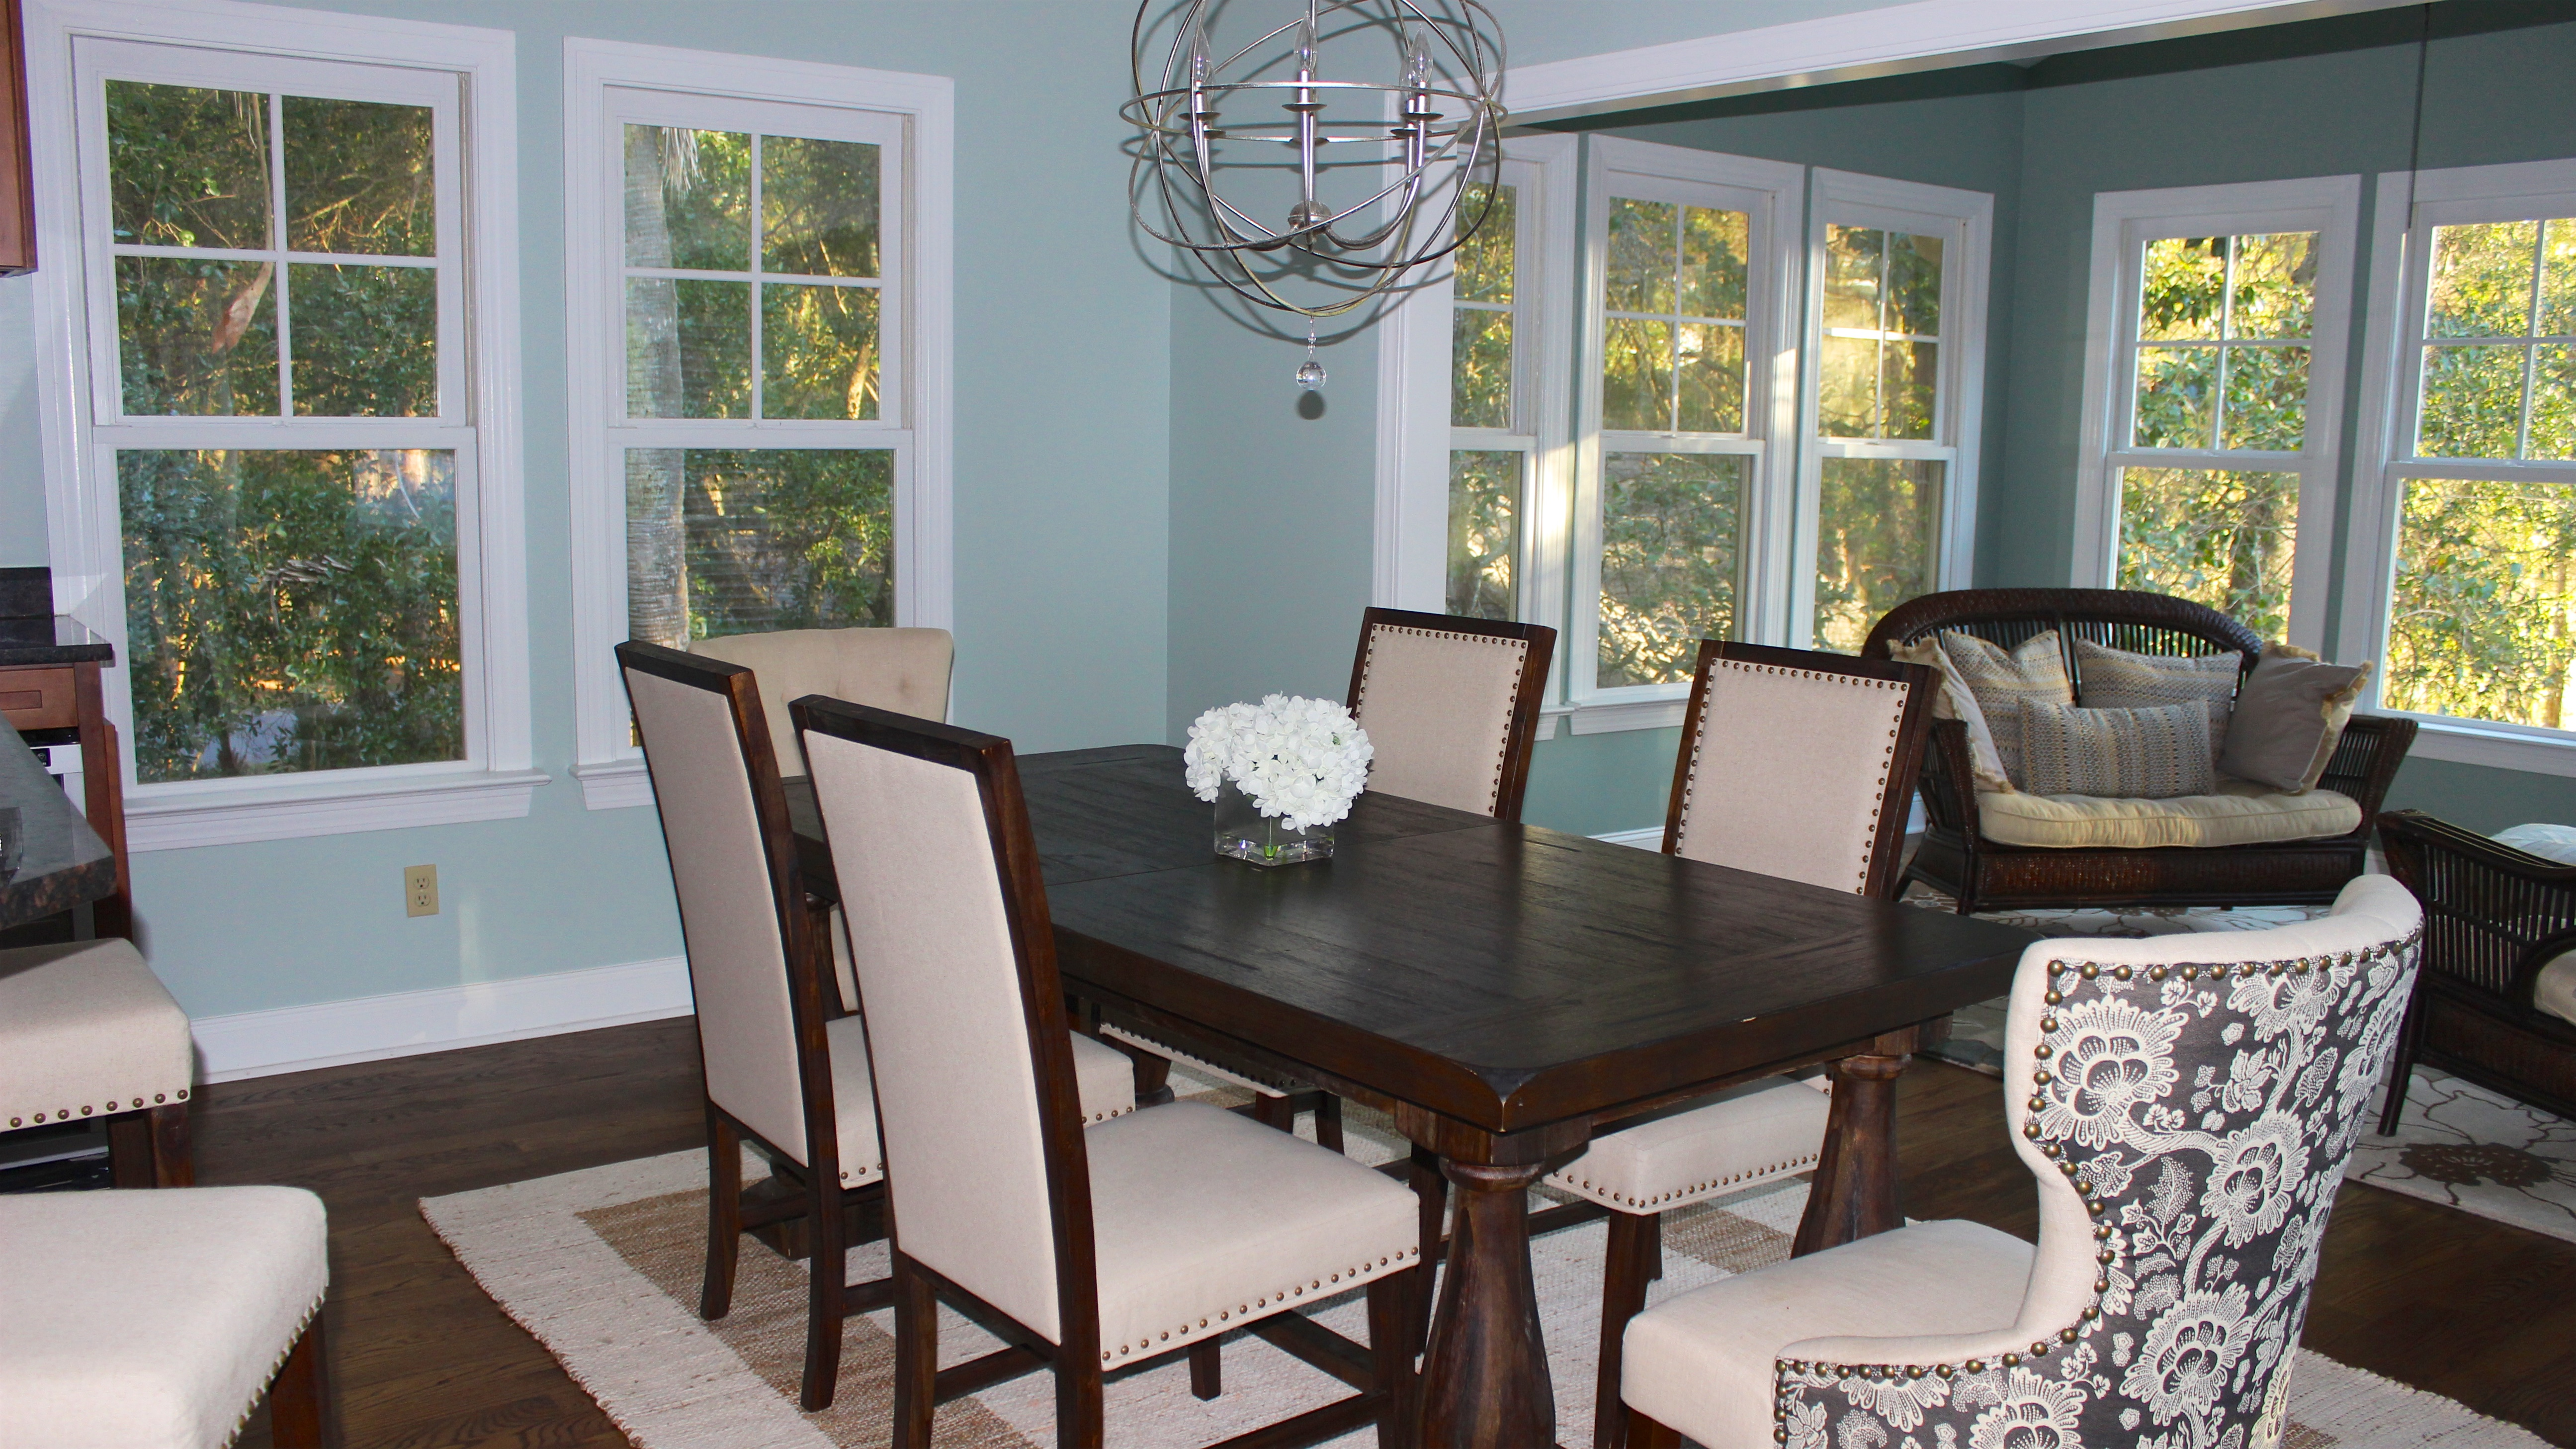 The dining area has a table that seats 6 on upholstered chairs.